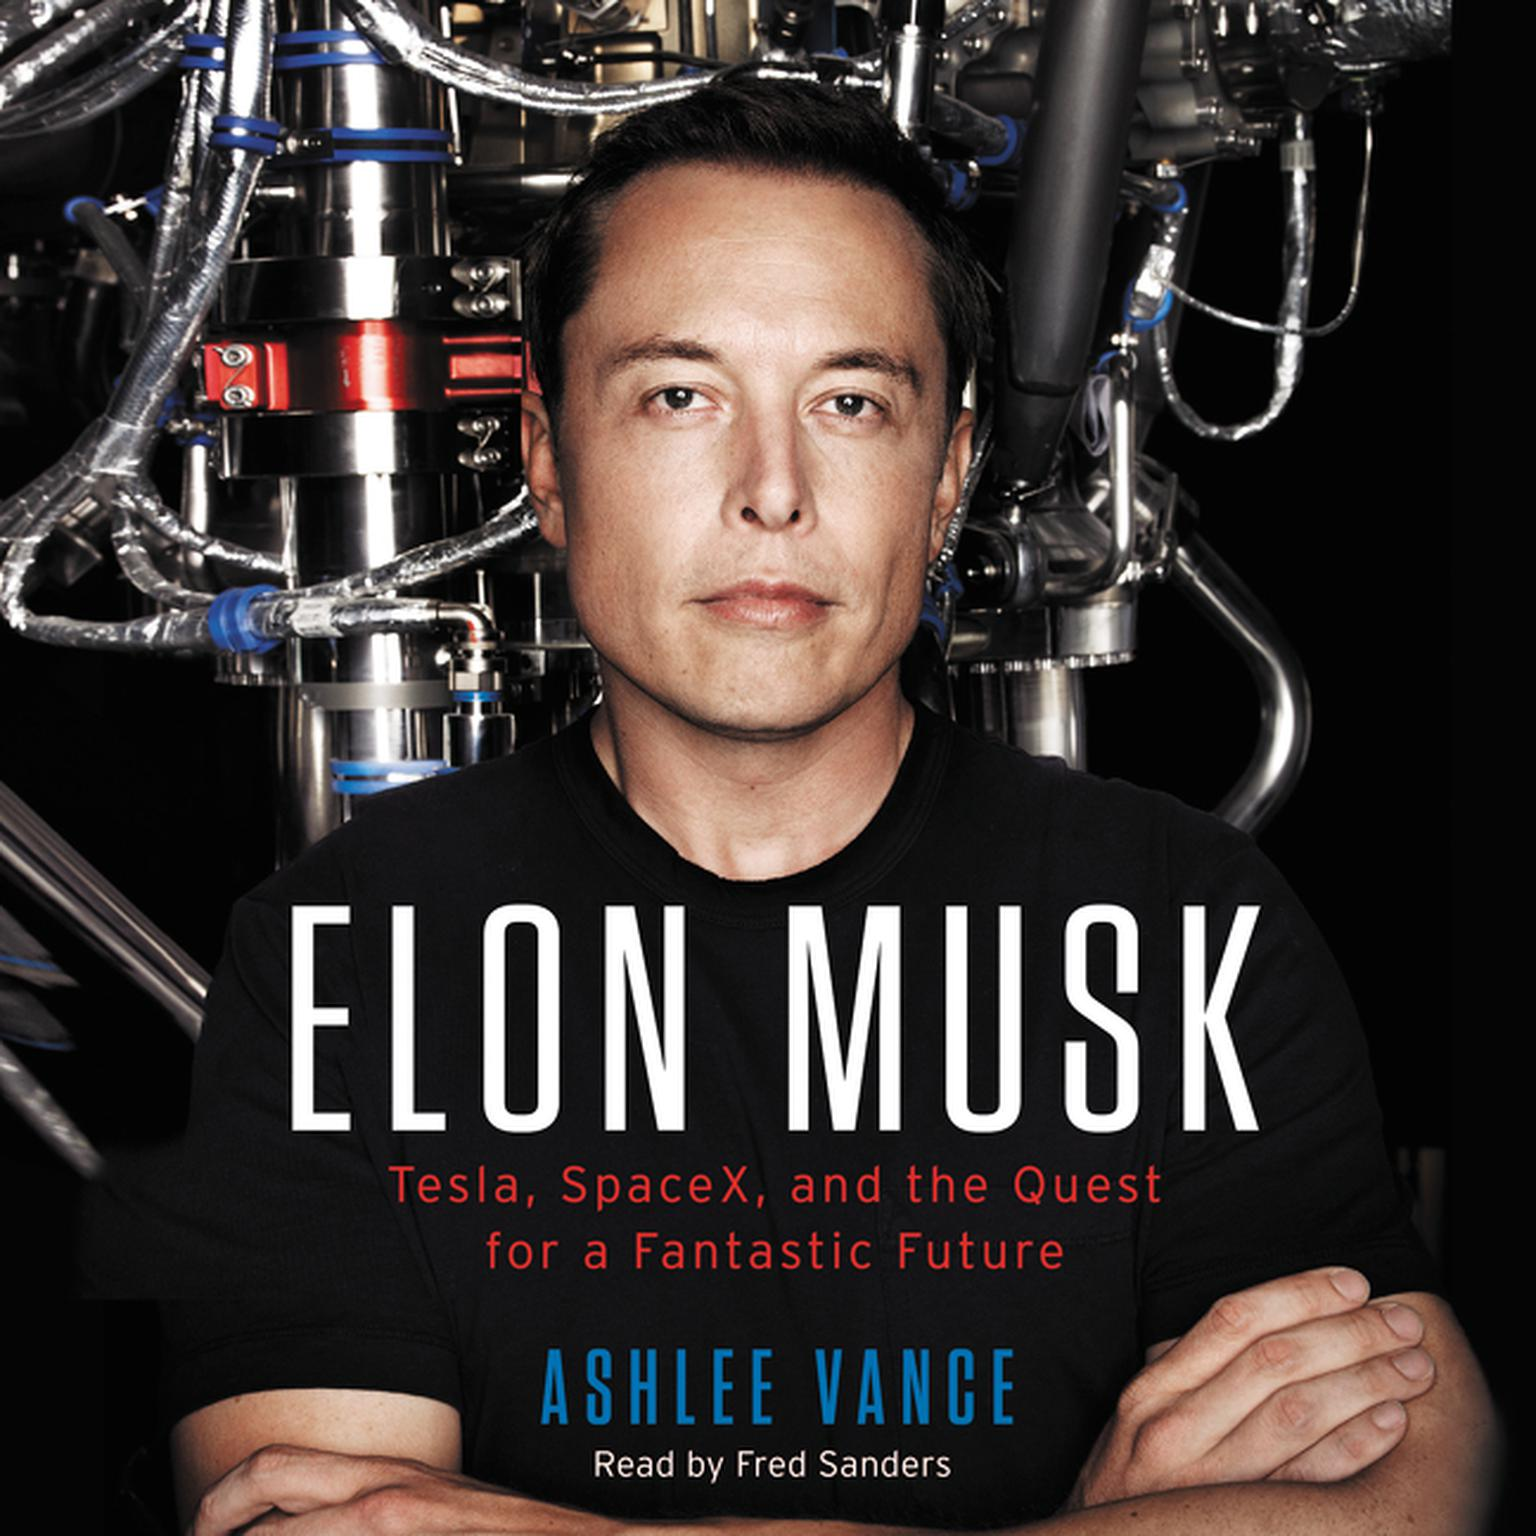 Elon Musk: Tesla, SpaceX, and the Quest for a Fantastic Future Audiobook,